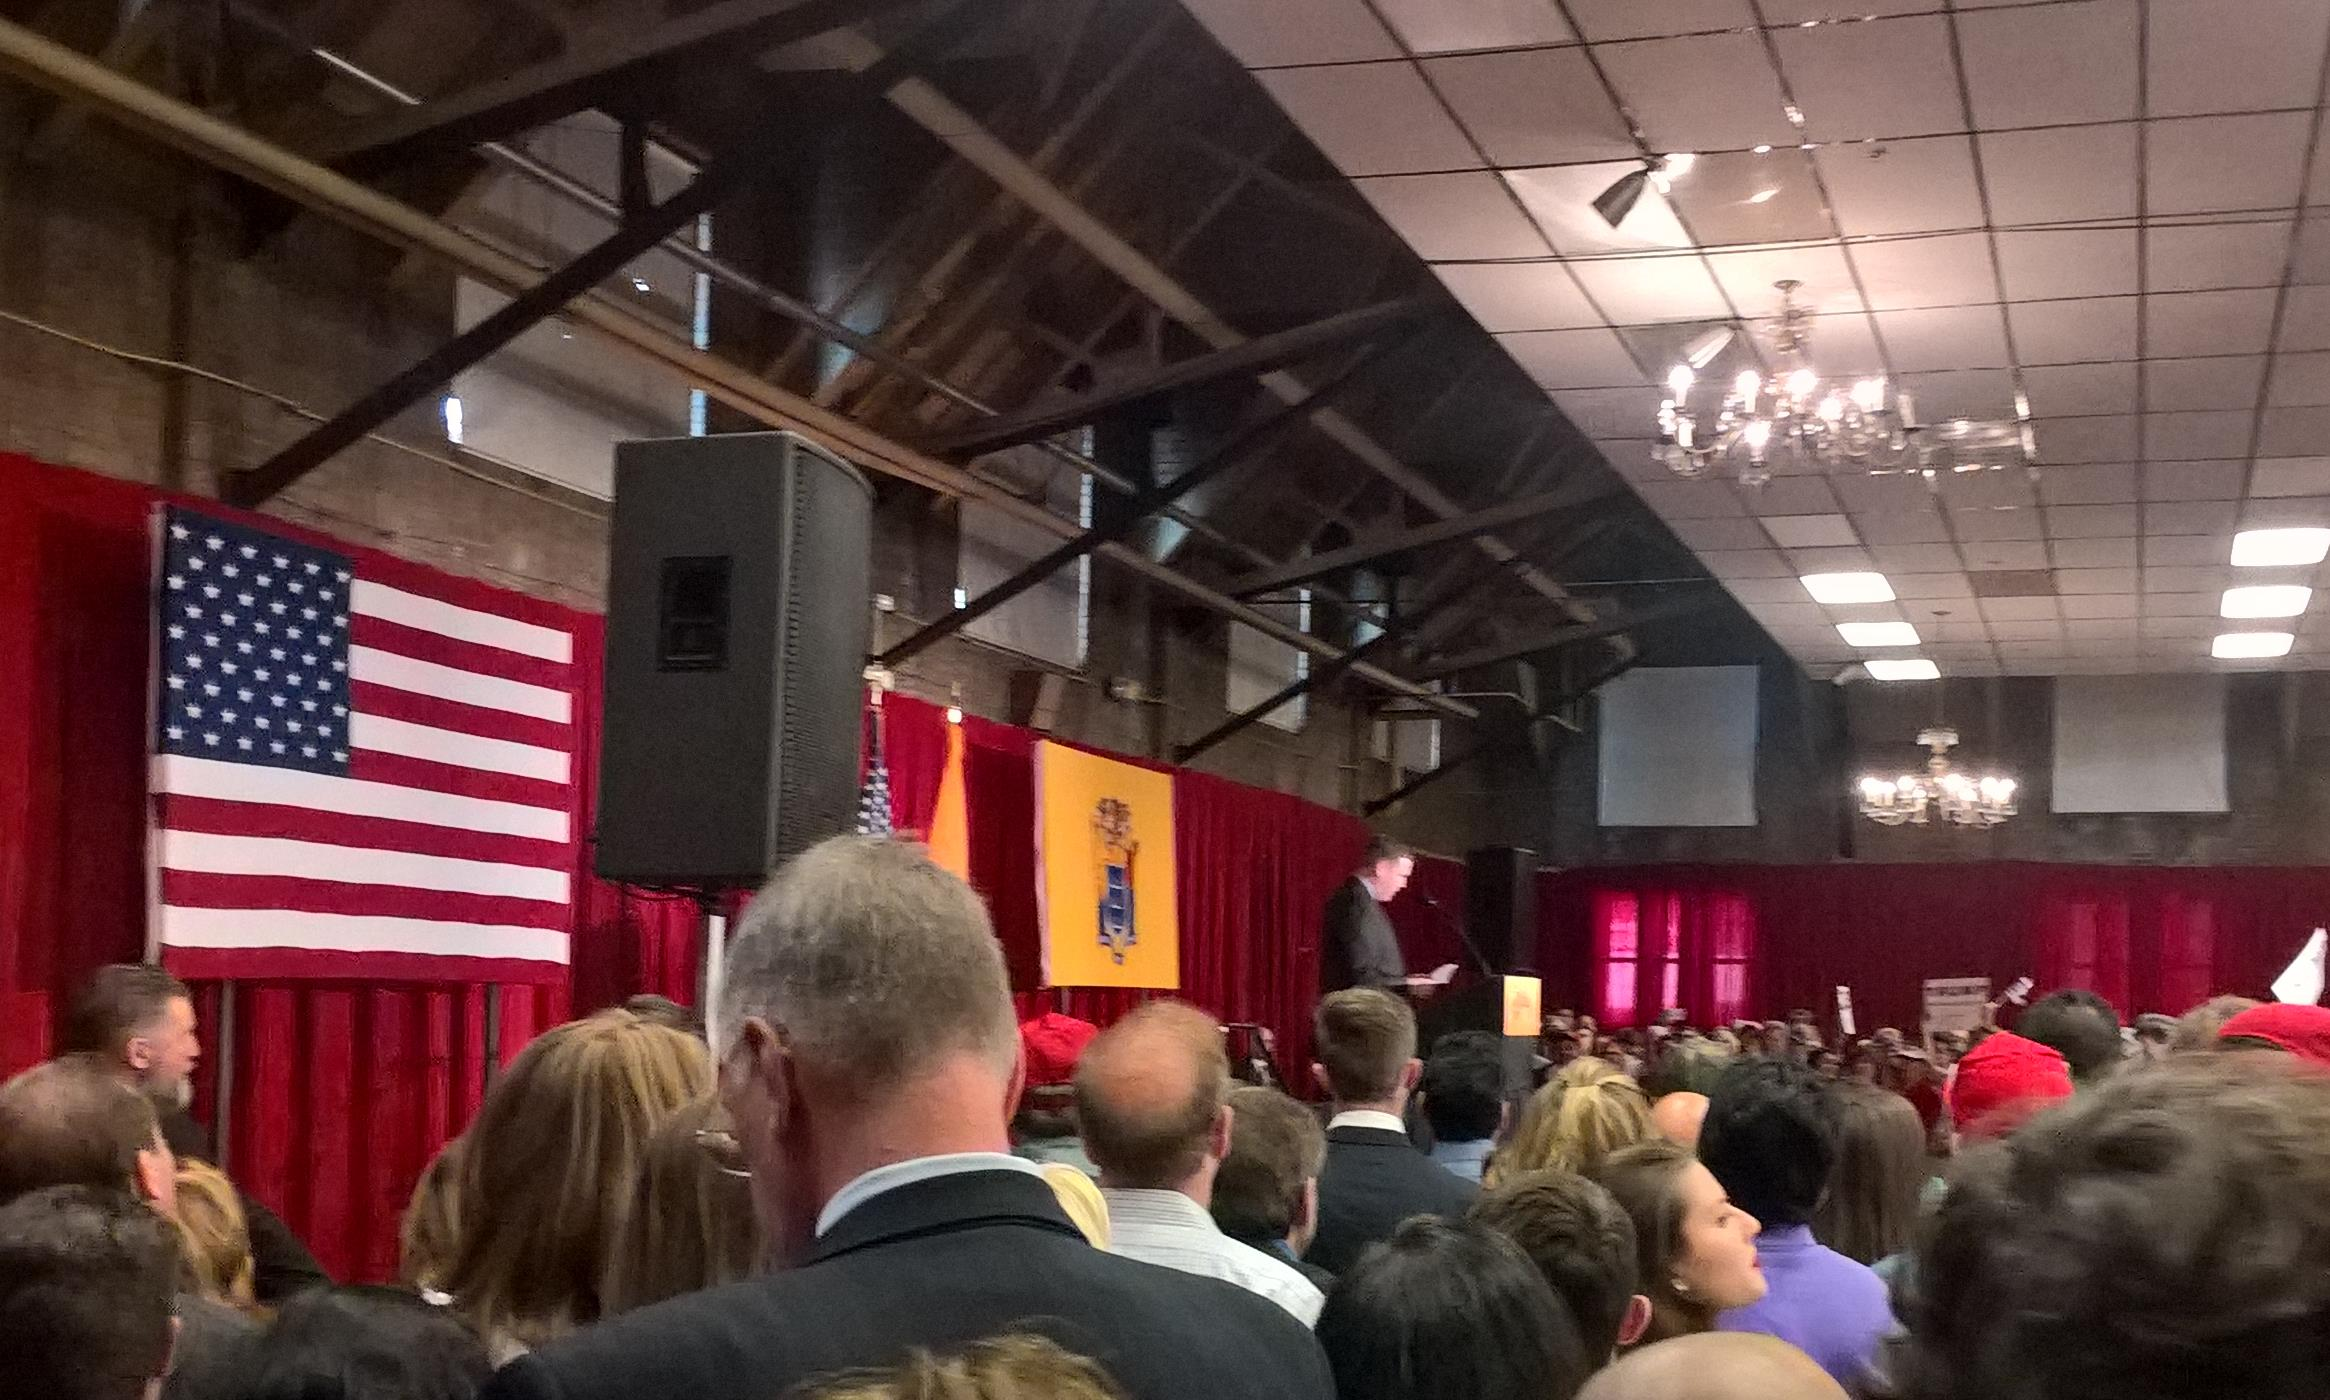 Senator Mike Doherty speaks at a Trump event at the Lawrenceville National Guard Armory on May 19th, 2016.